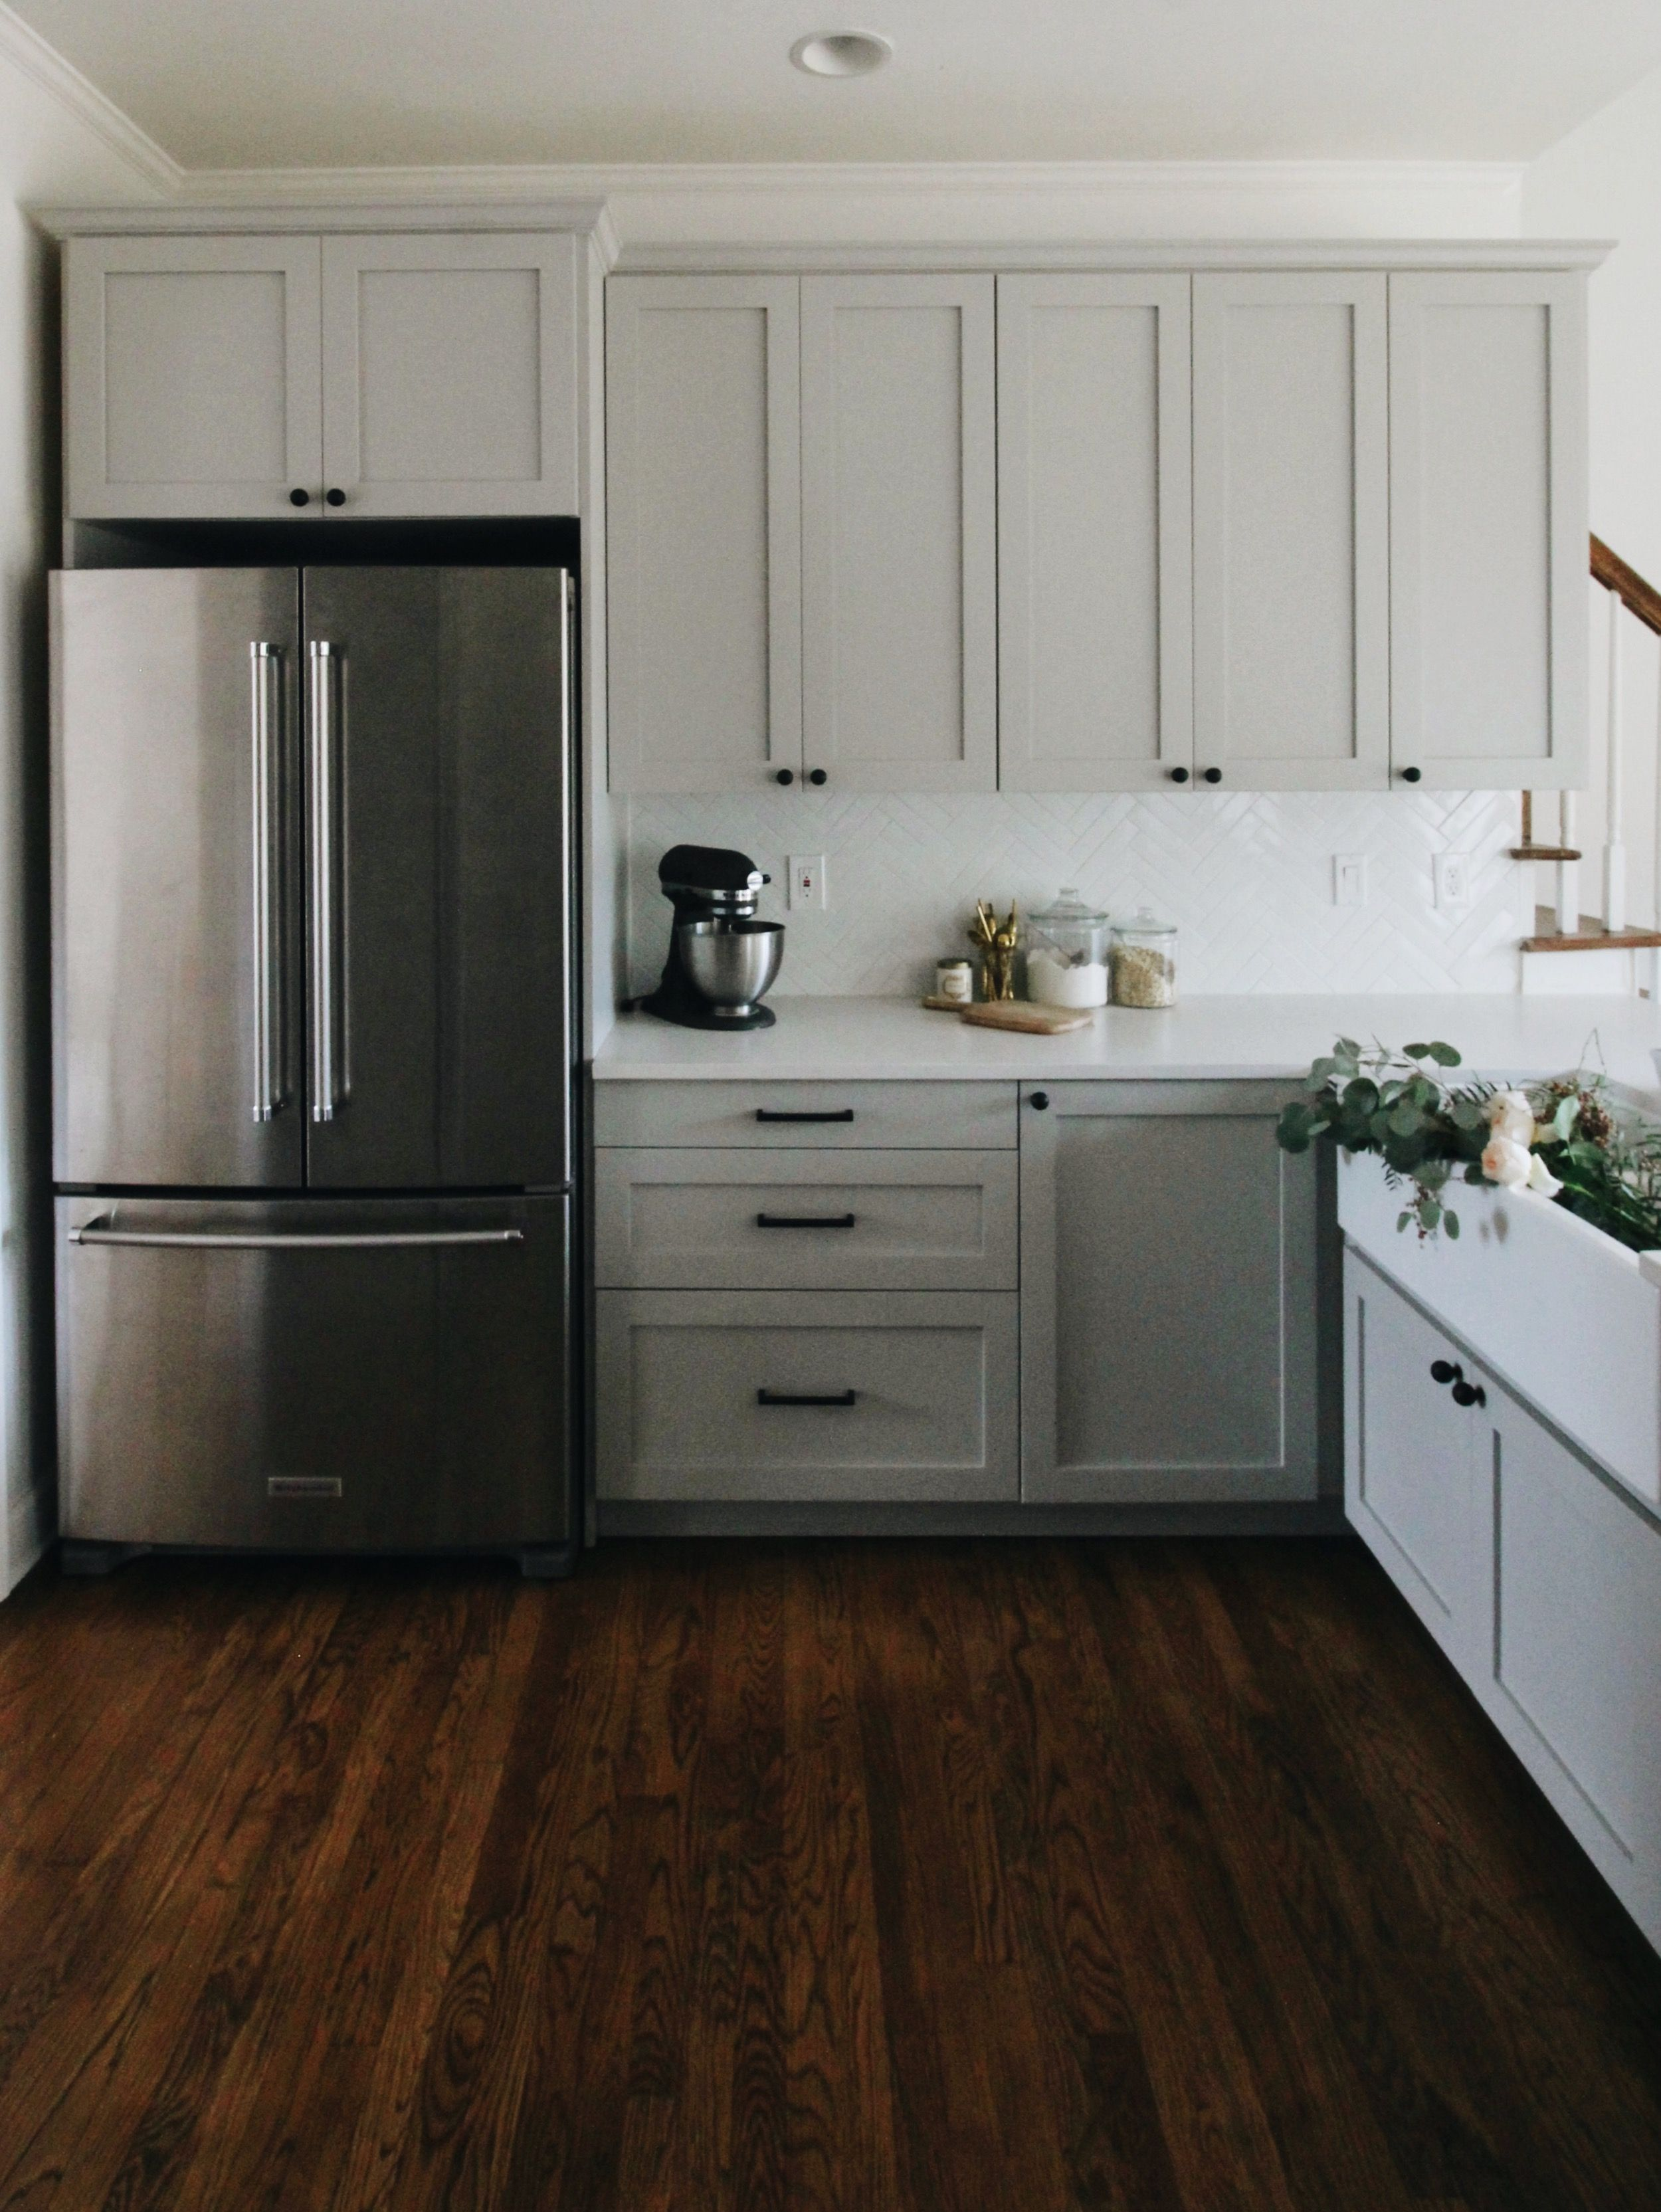 Our Kitchen Tour  Feels Like Home  Minimalist kitchen